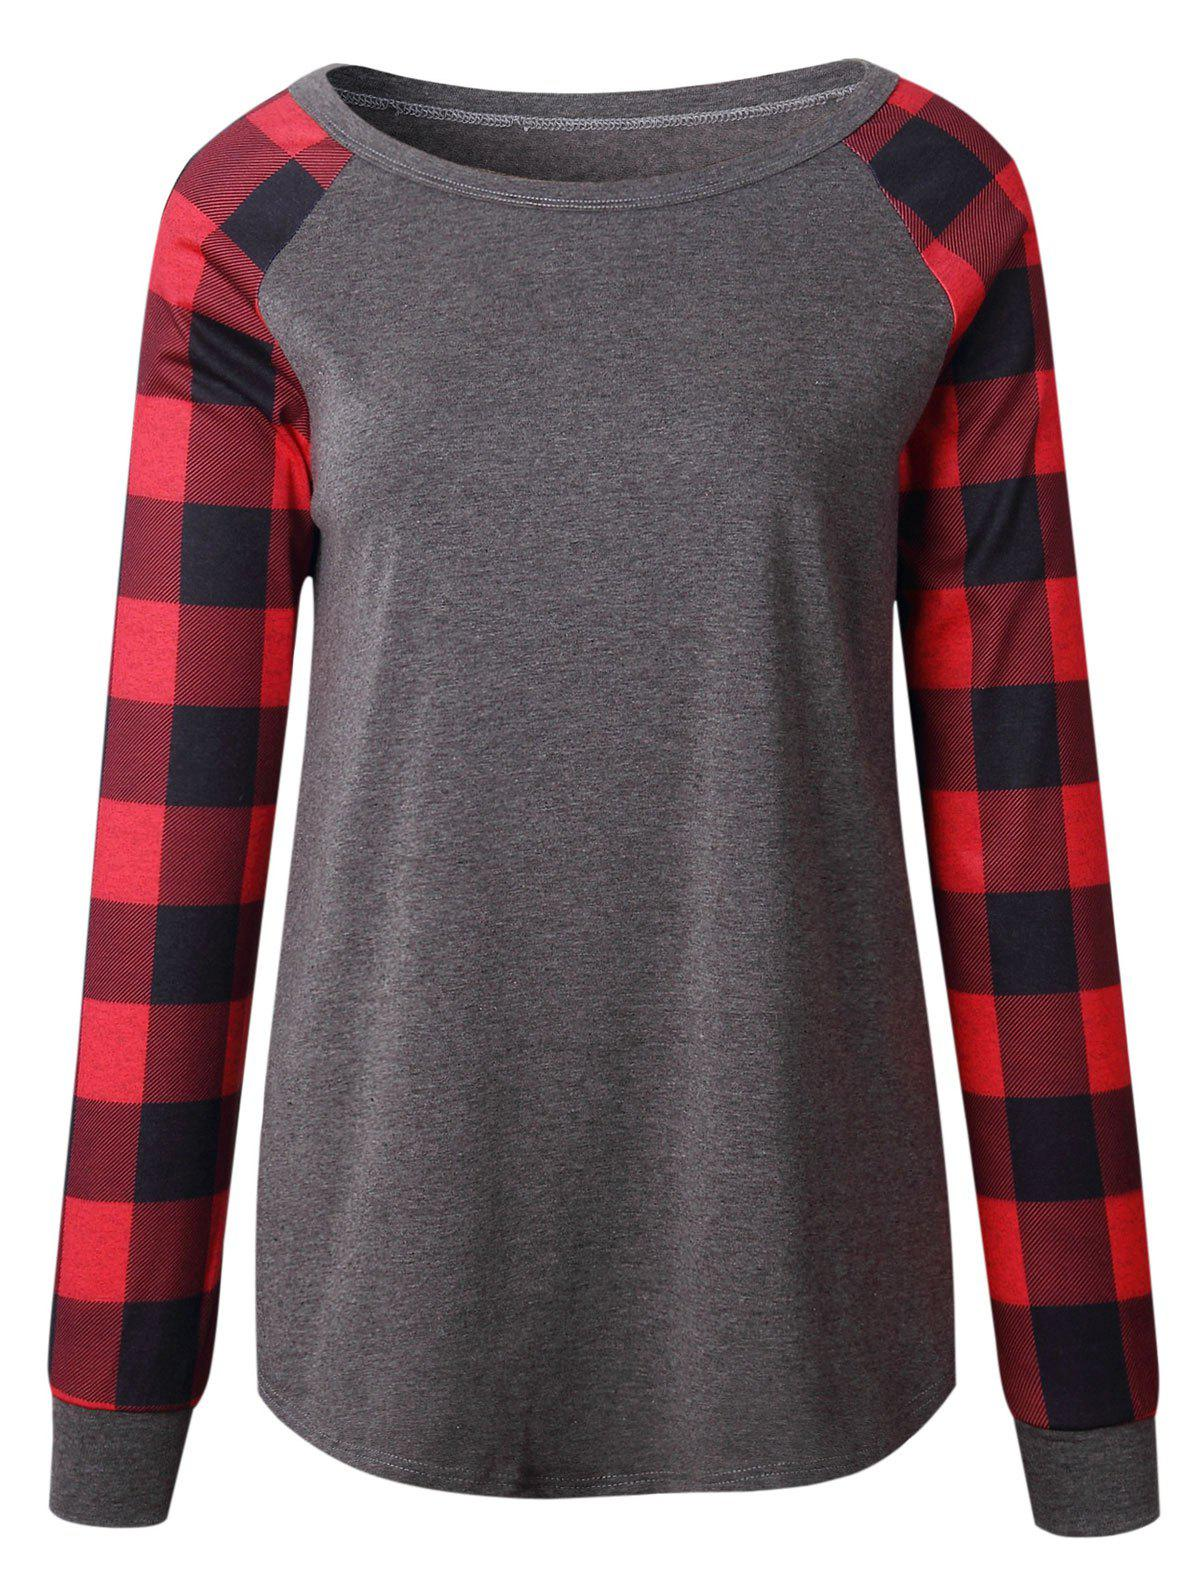 Plaid Panel Raglan Sleeve Top - DEEP GRAY XL